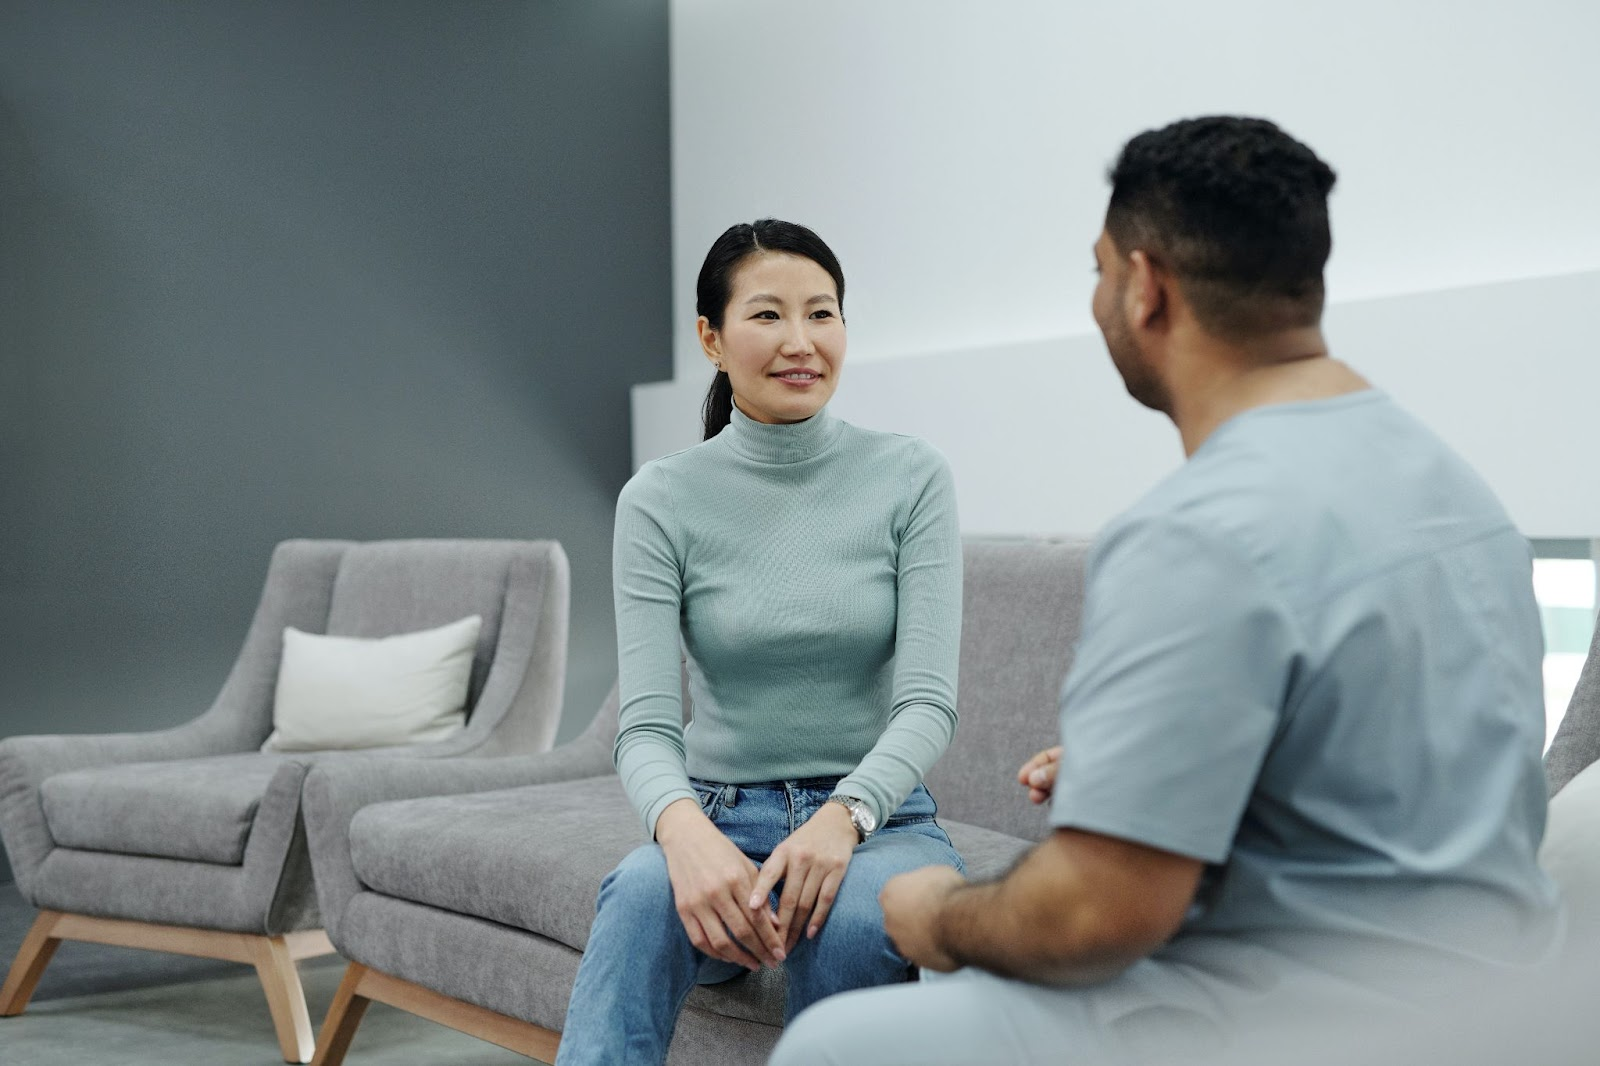 NorCal imaging: Health professional talking to a woman